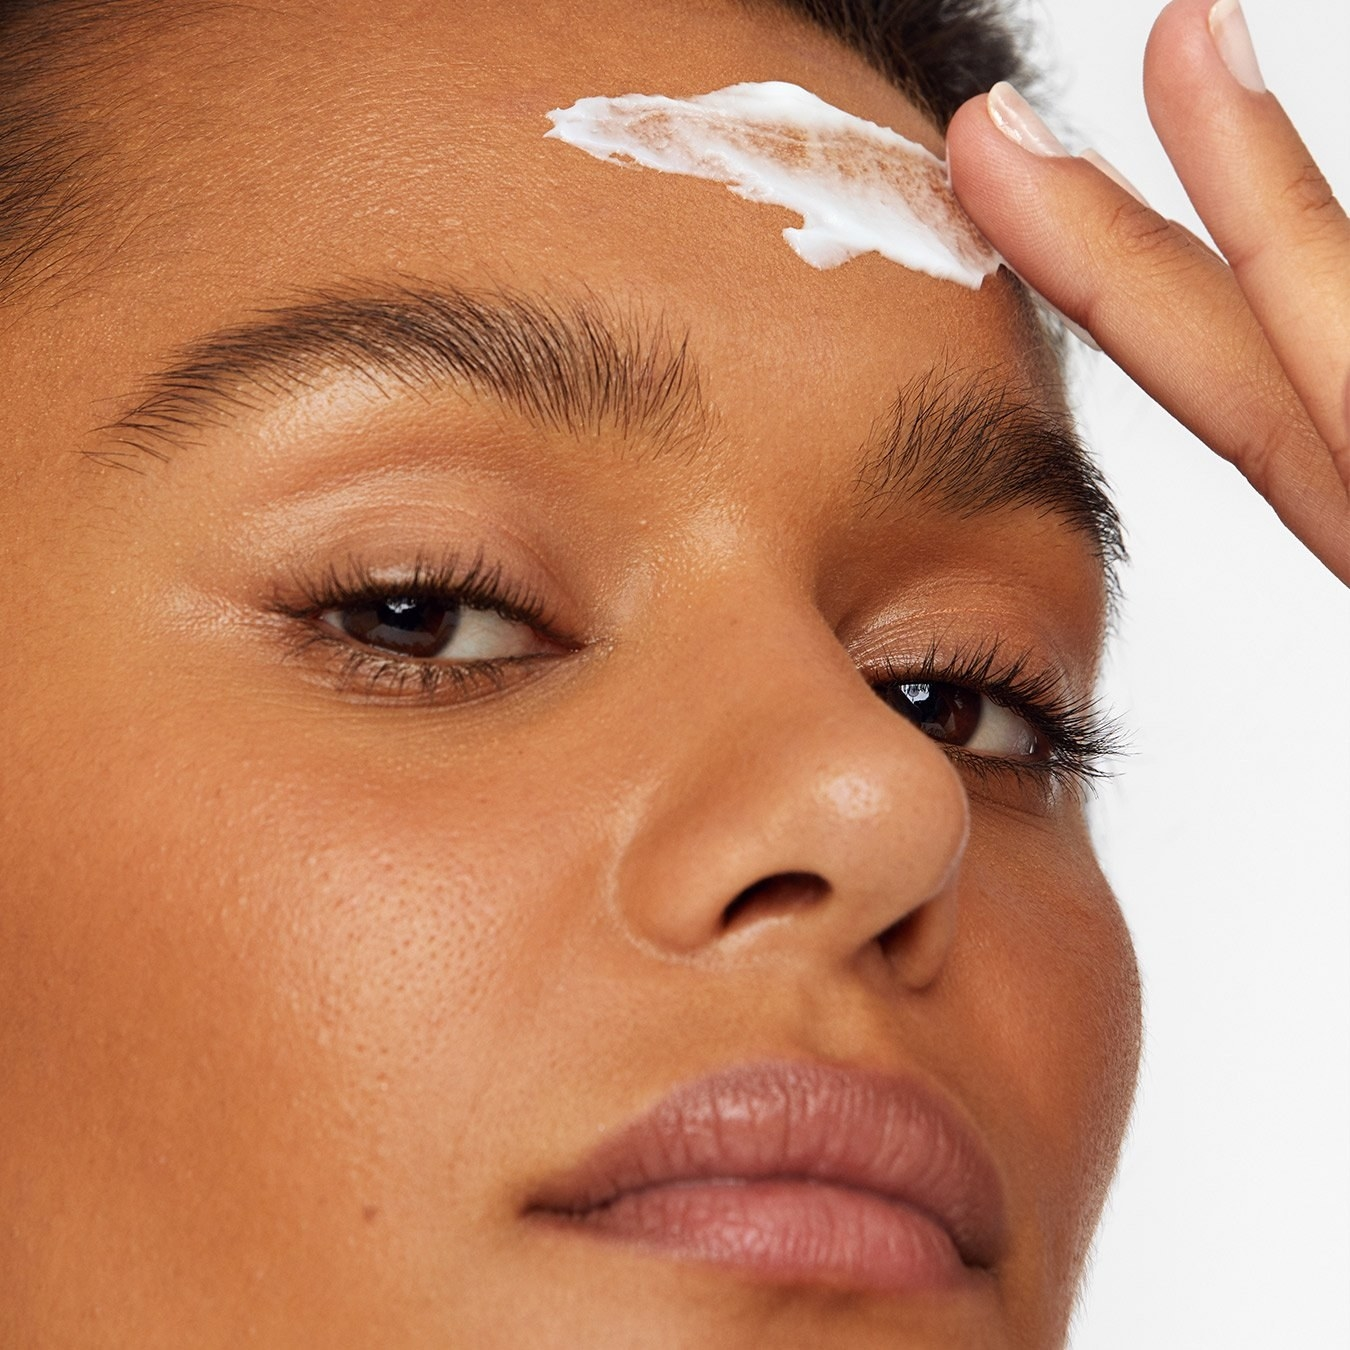 A model applying the white cream to their forehead